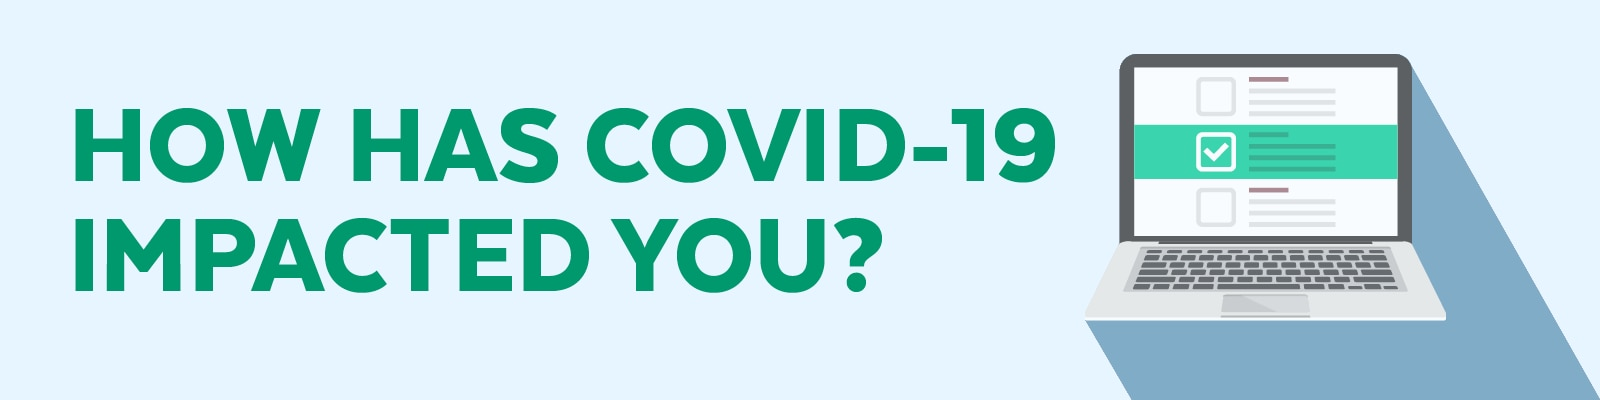 Image text: How has COVID-19 impacted you?